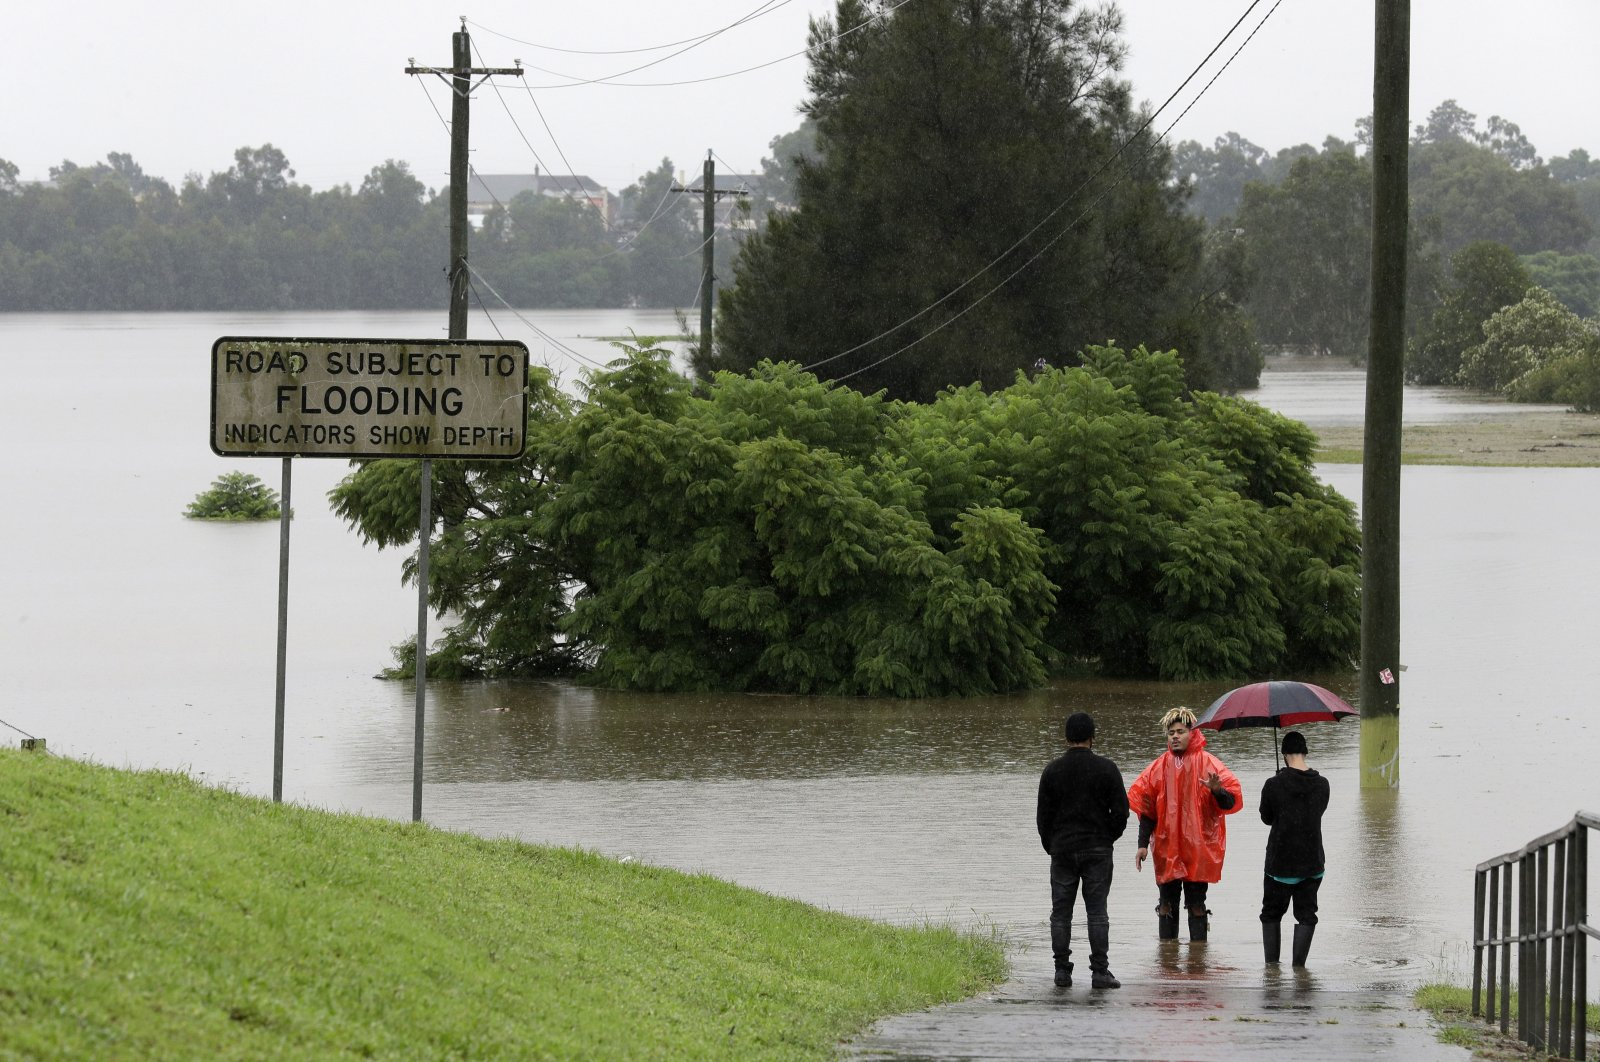 Men stand at the edge of a road flooded by water from the Hawkesbury River in Windsor, northwest of Sydney, New South Wales, Australia, March 22, 2021. (AP Photo)